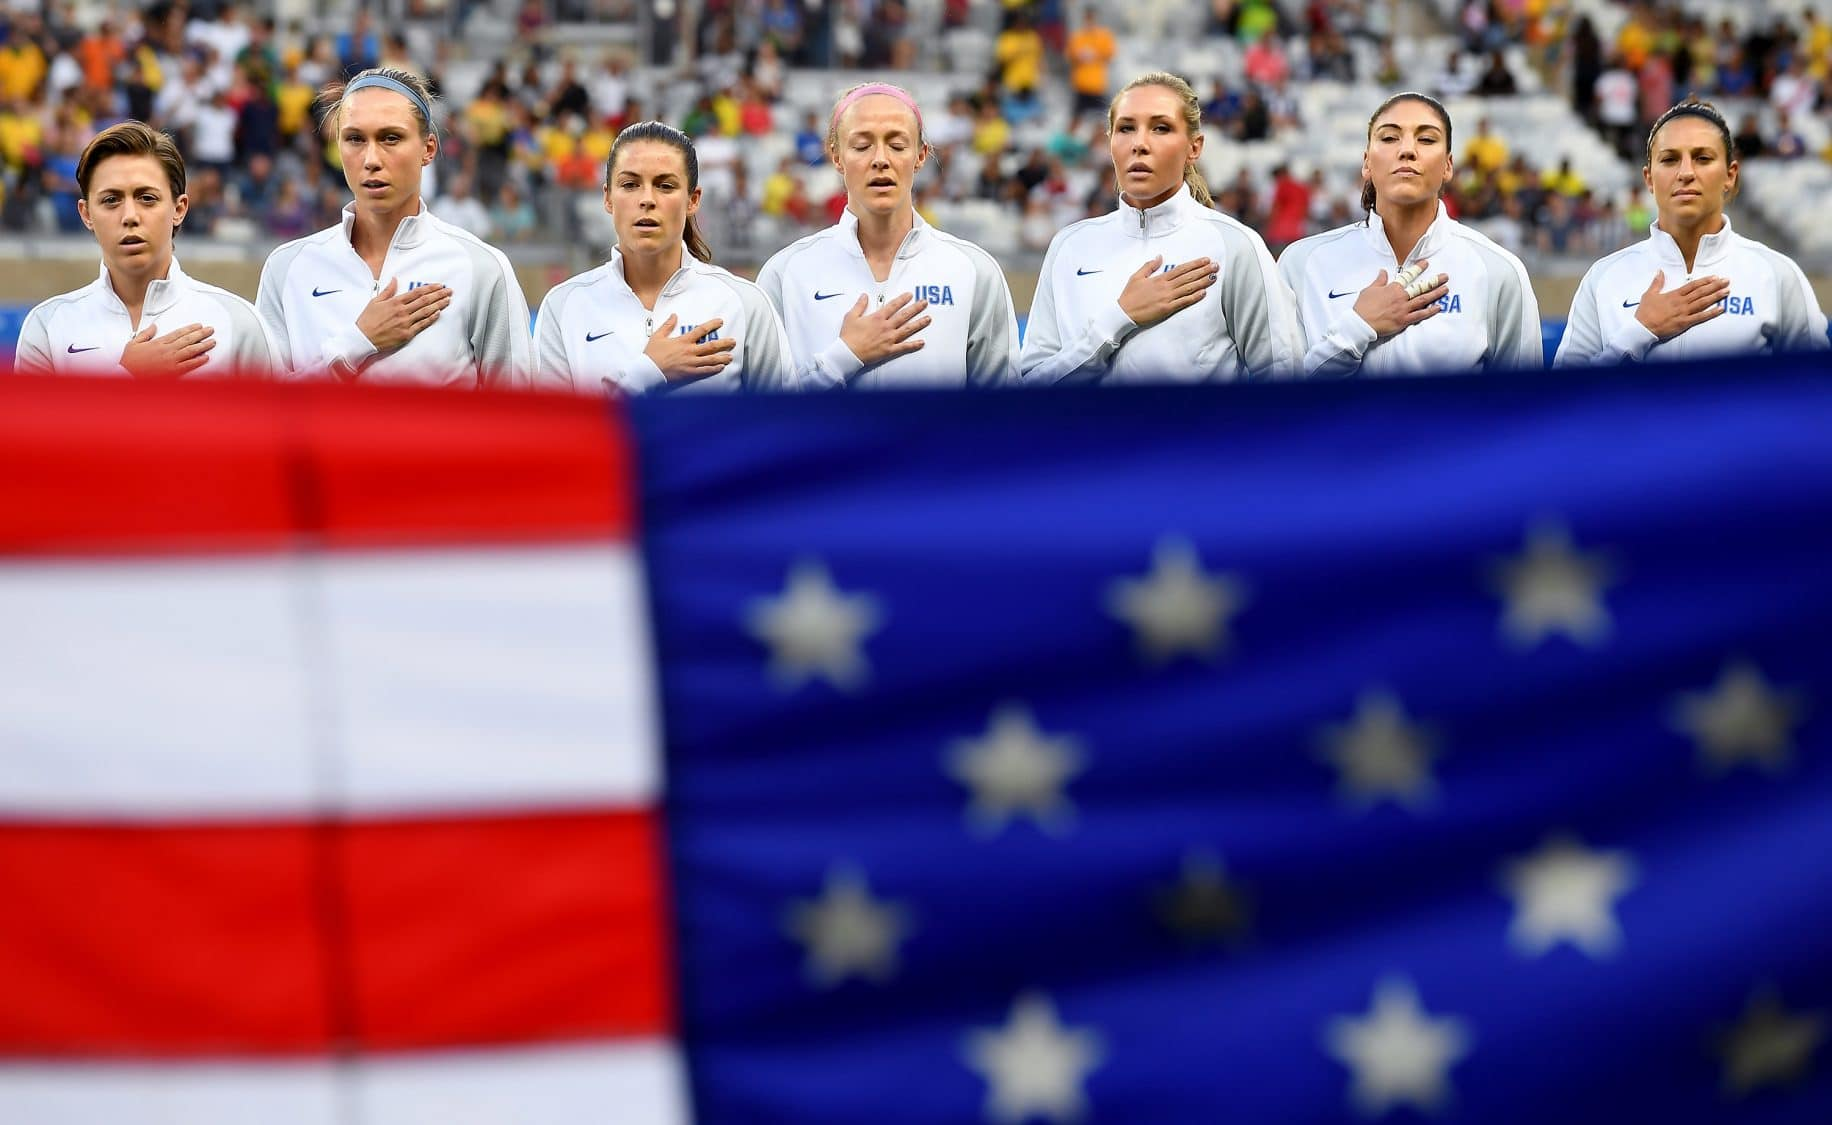 U.S. soccer will now allow players to kneel for national anthem